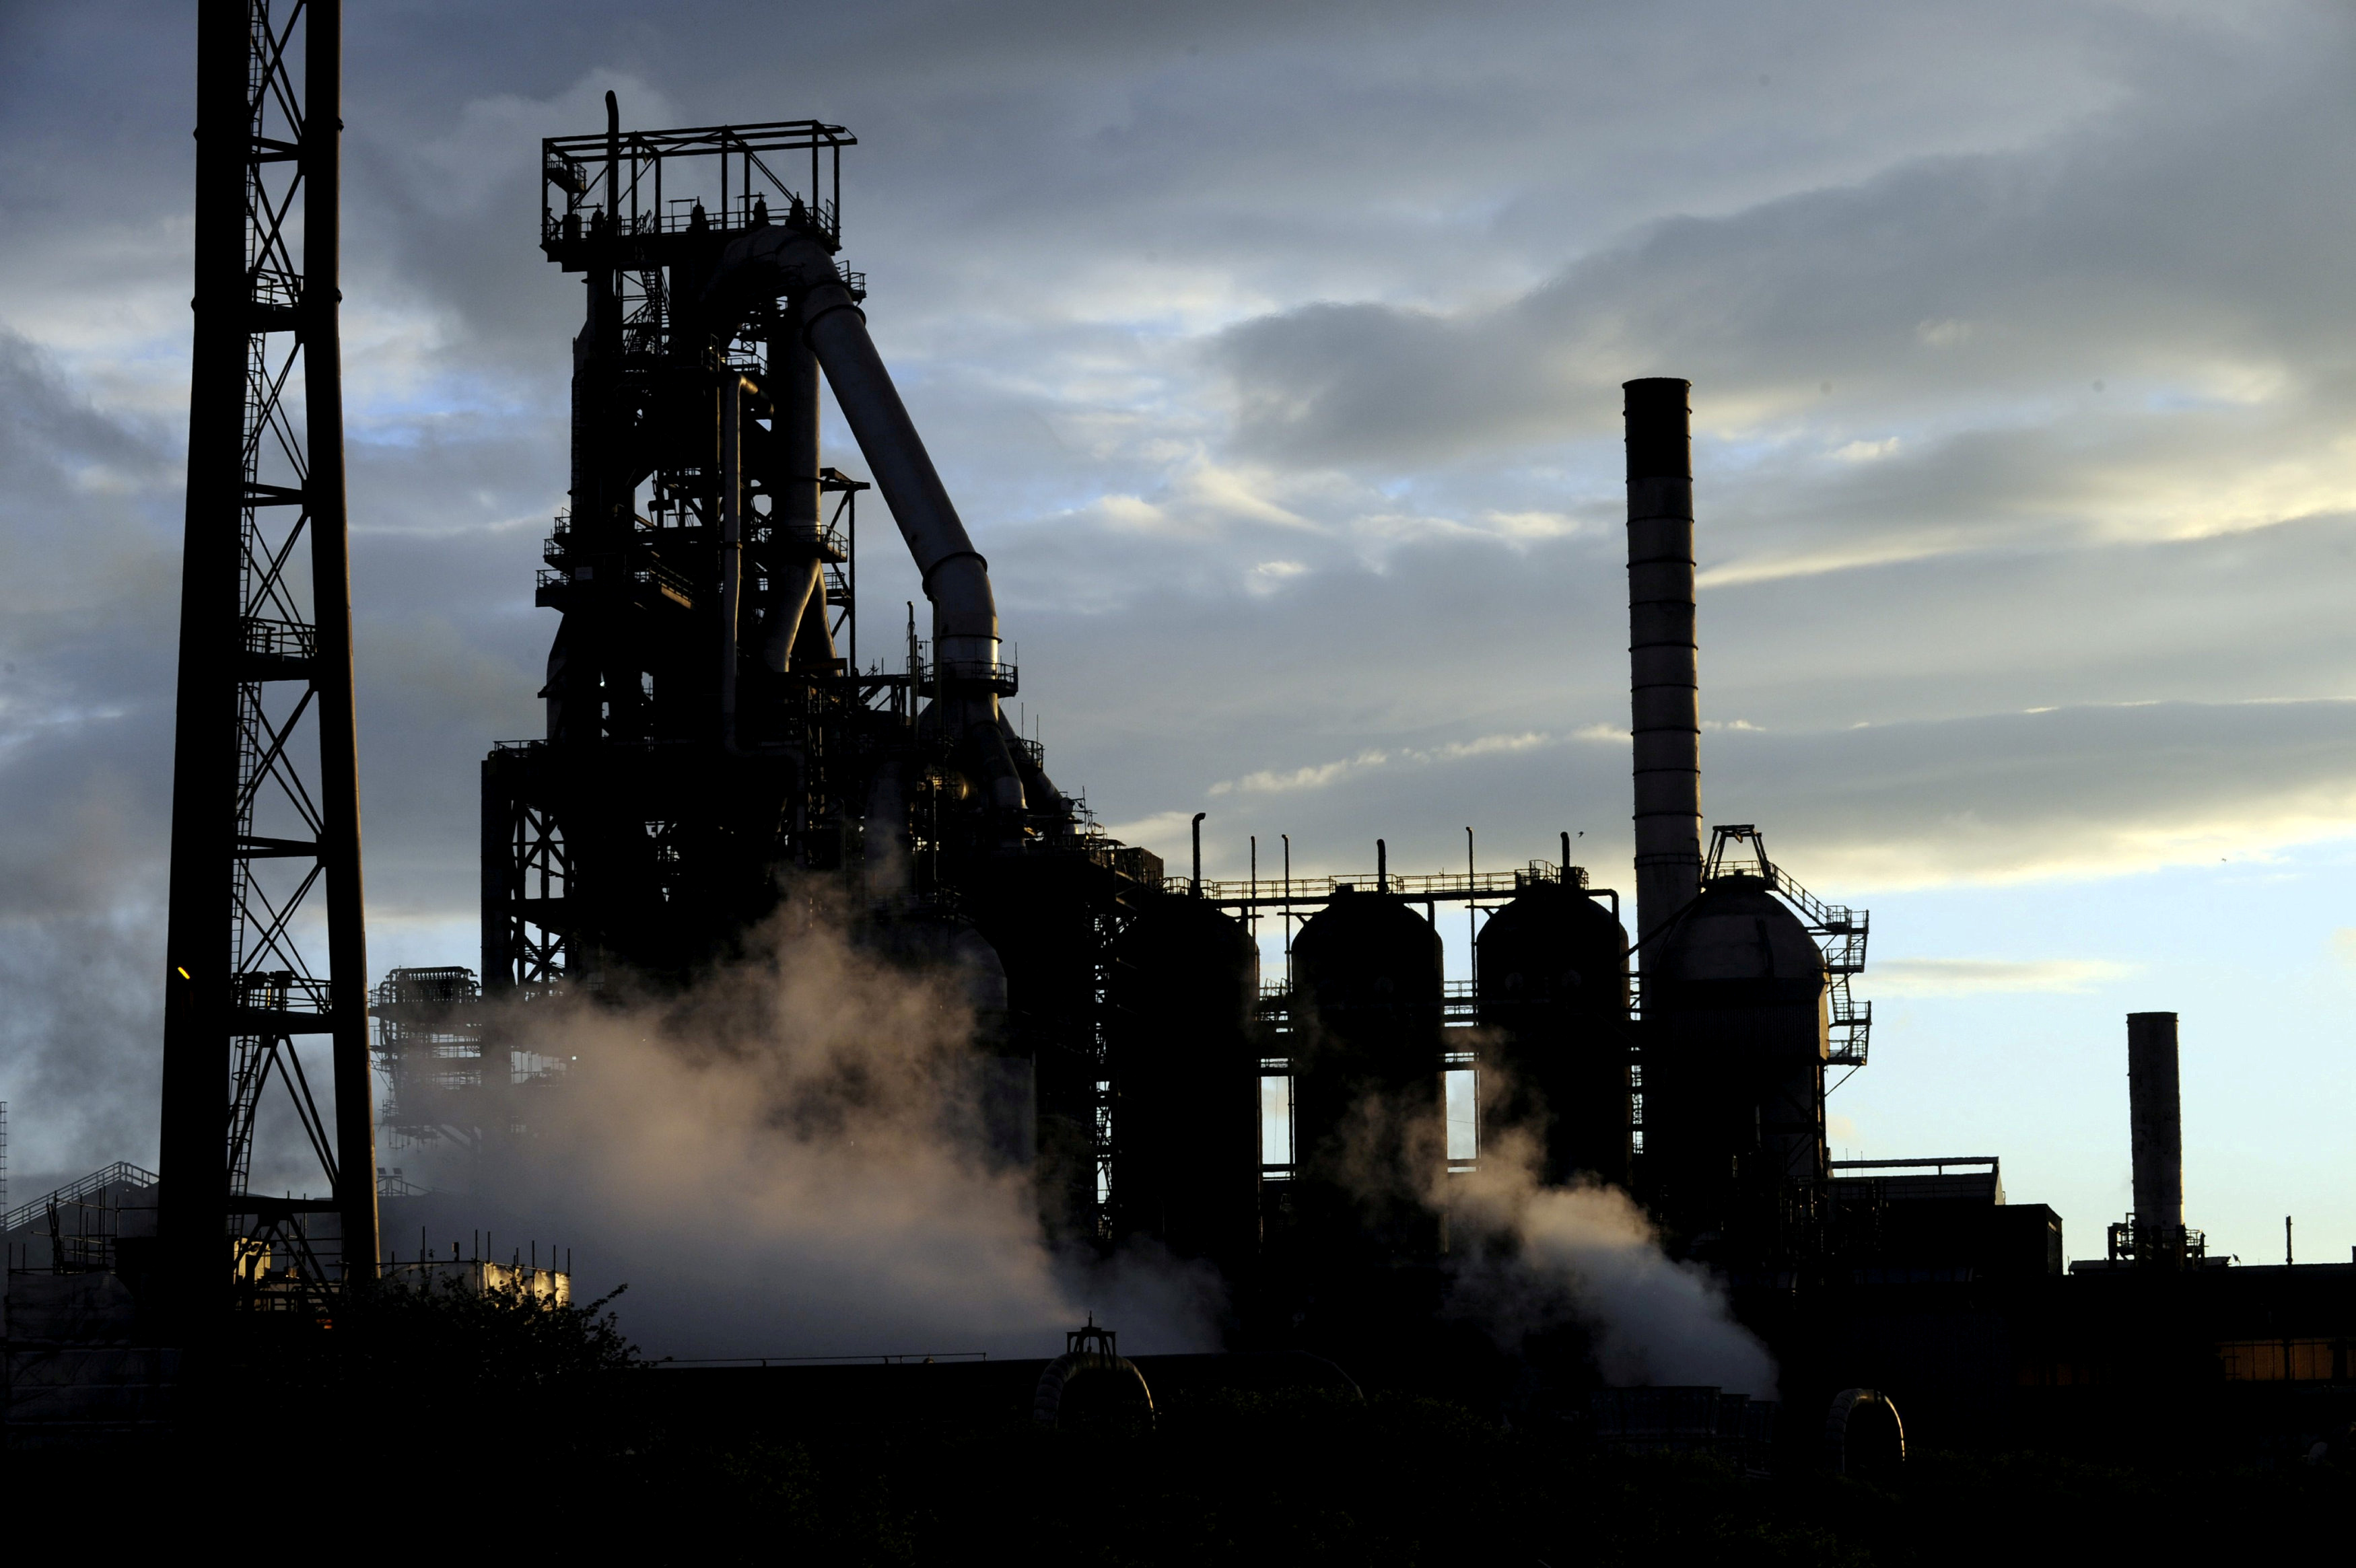 FILE - One of the blast furnaces of the Tata Steel plant is seen at sunset in Port Talbot, South Wales, May 31, 2013.